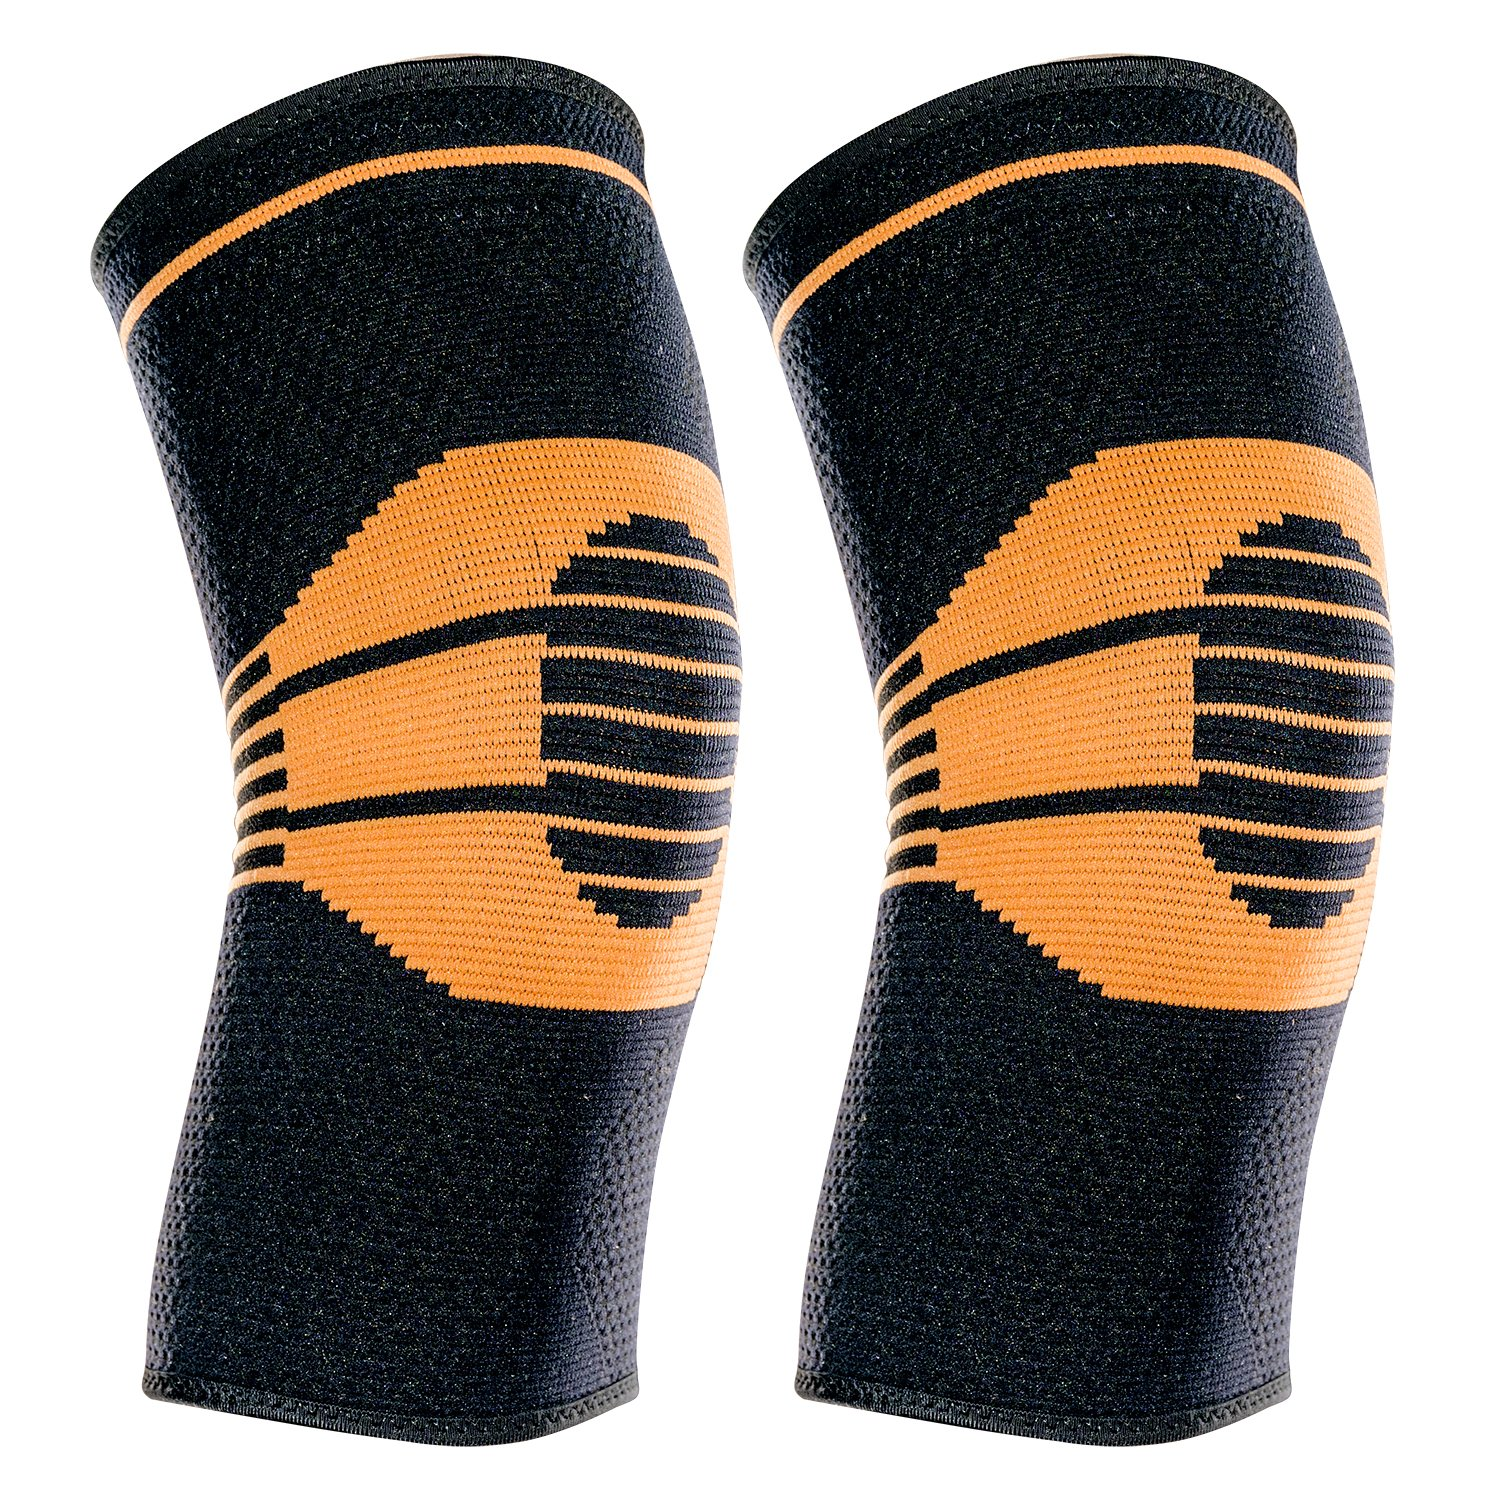 Sports Meniscus Tear ACL O-Best Compression Knee Sleeves,2 Pack Knee Brace Support for Running Arthritis Joint Pain Relief and Injury Recovery